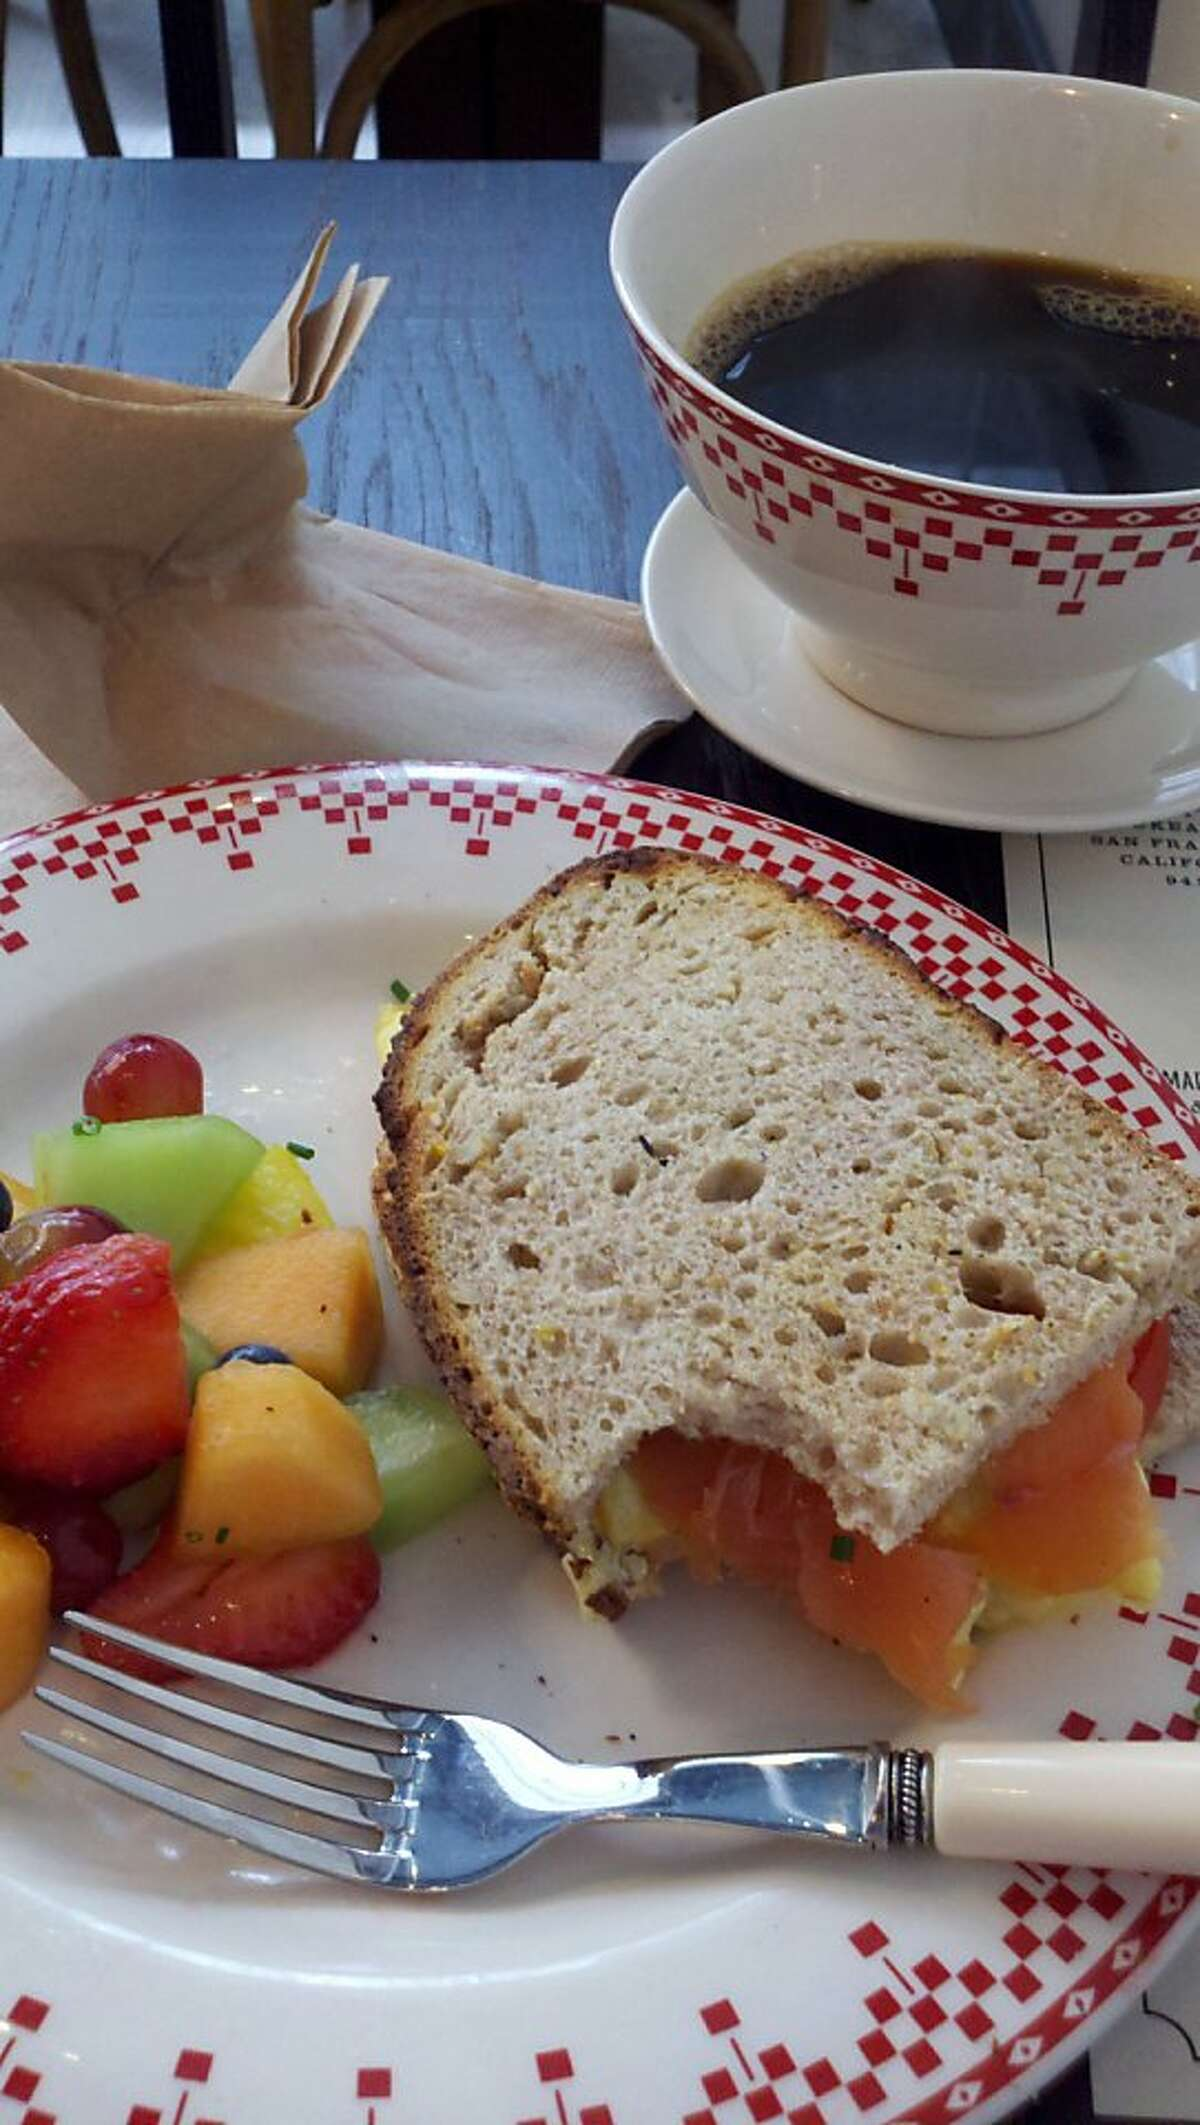 An egg and cheese sandwich with smoked salmon and a side of fruit at new La Boulange in Union Square.